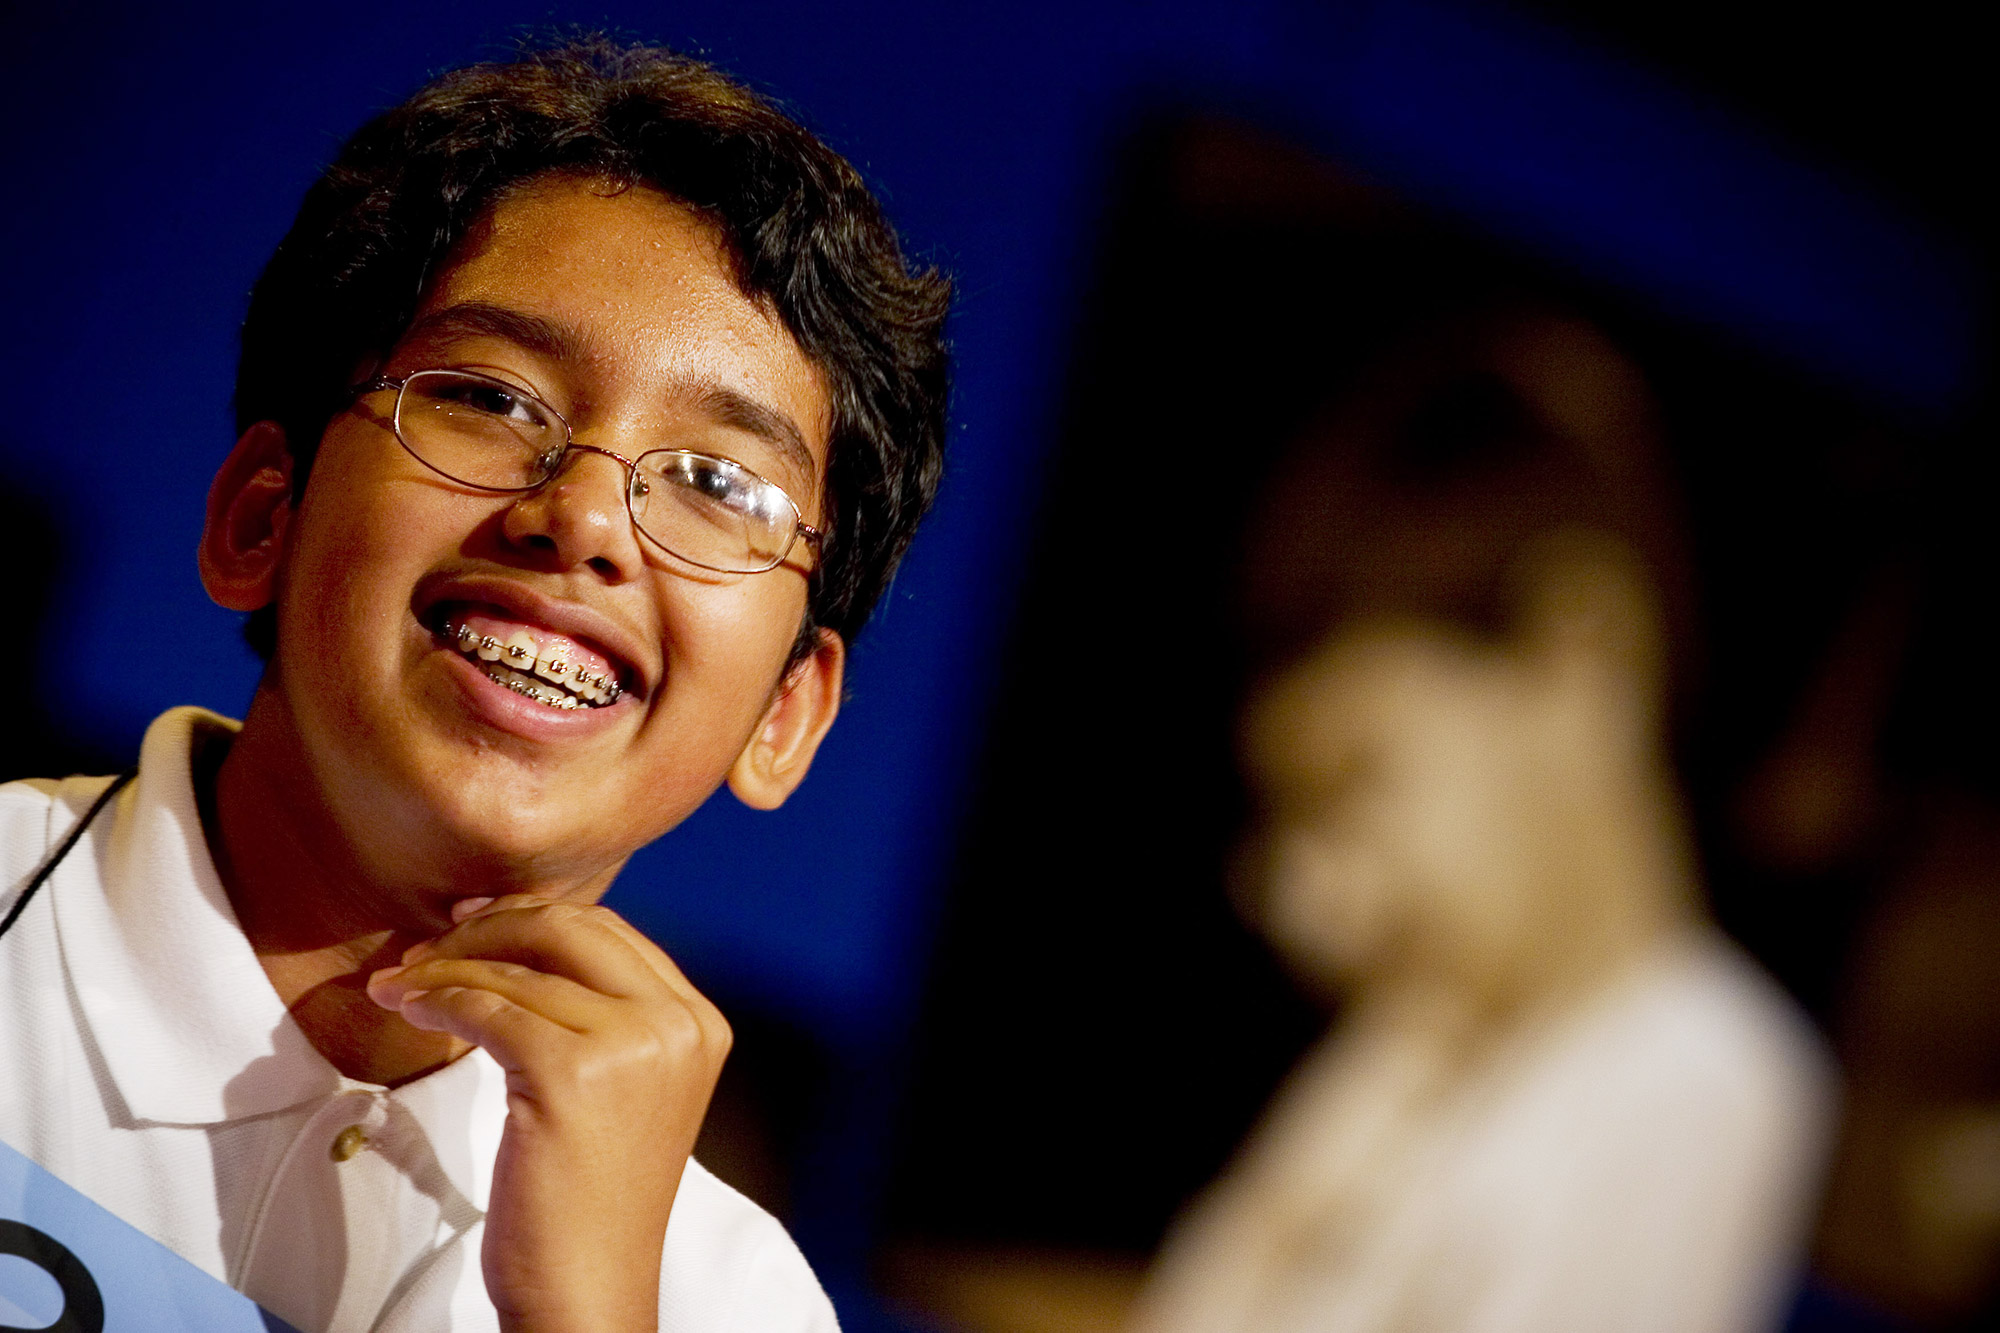 """After 19 rounds of competition Anurag Kashyap, 13, an eighth grader from Meadowbrook Middle School in Poway, California, wins the bee having correctly spelled the word """"appoggiatura"""" in the Grand Hyatt Hotel June 2, 2005 in Washington, DC. The 78th Annual Scripps National Spelling Bee got underway with 73 spellers sponsored by over 260 sponsors from the United States, Europe, Canada, New Zealand, Guam, Jamaica, Puerto Rico, the U.S. Virgin Islands, The Bahamas, and American Samoa. The spellers started with a 25-word written test followed by several oral rounds until a winner was chosen. During the oral rounds a speller could ask a word's pronunciation, definition, part of speech, etymology and could also ask to have the word used in a sentence. The spelling bee is held from June 1 through June 2."""